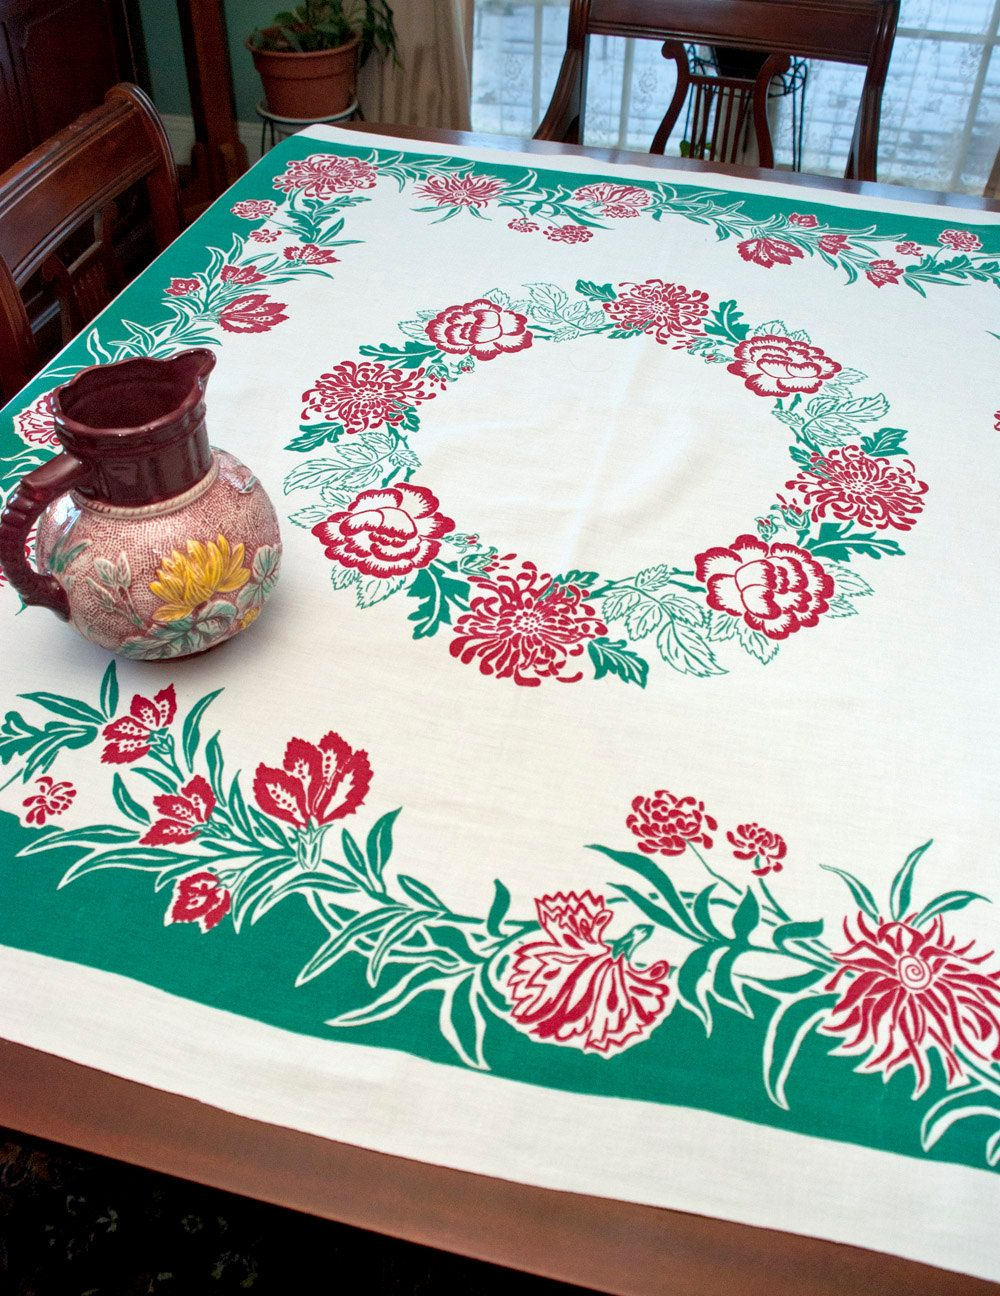 Vintage Tablecloth, 1950s Peonies & Roses, Green Border